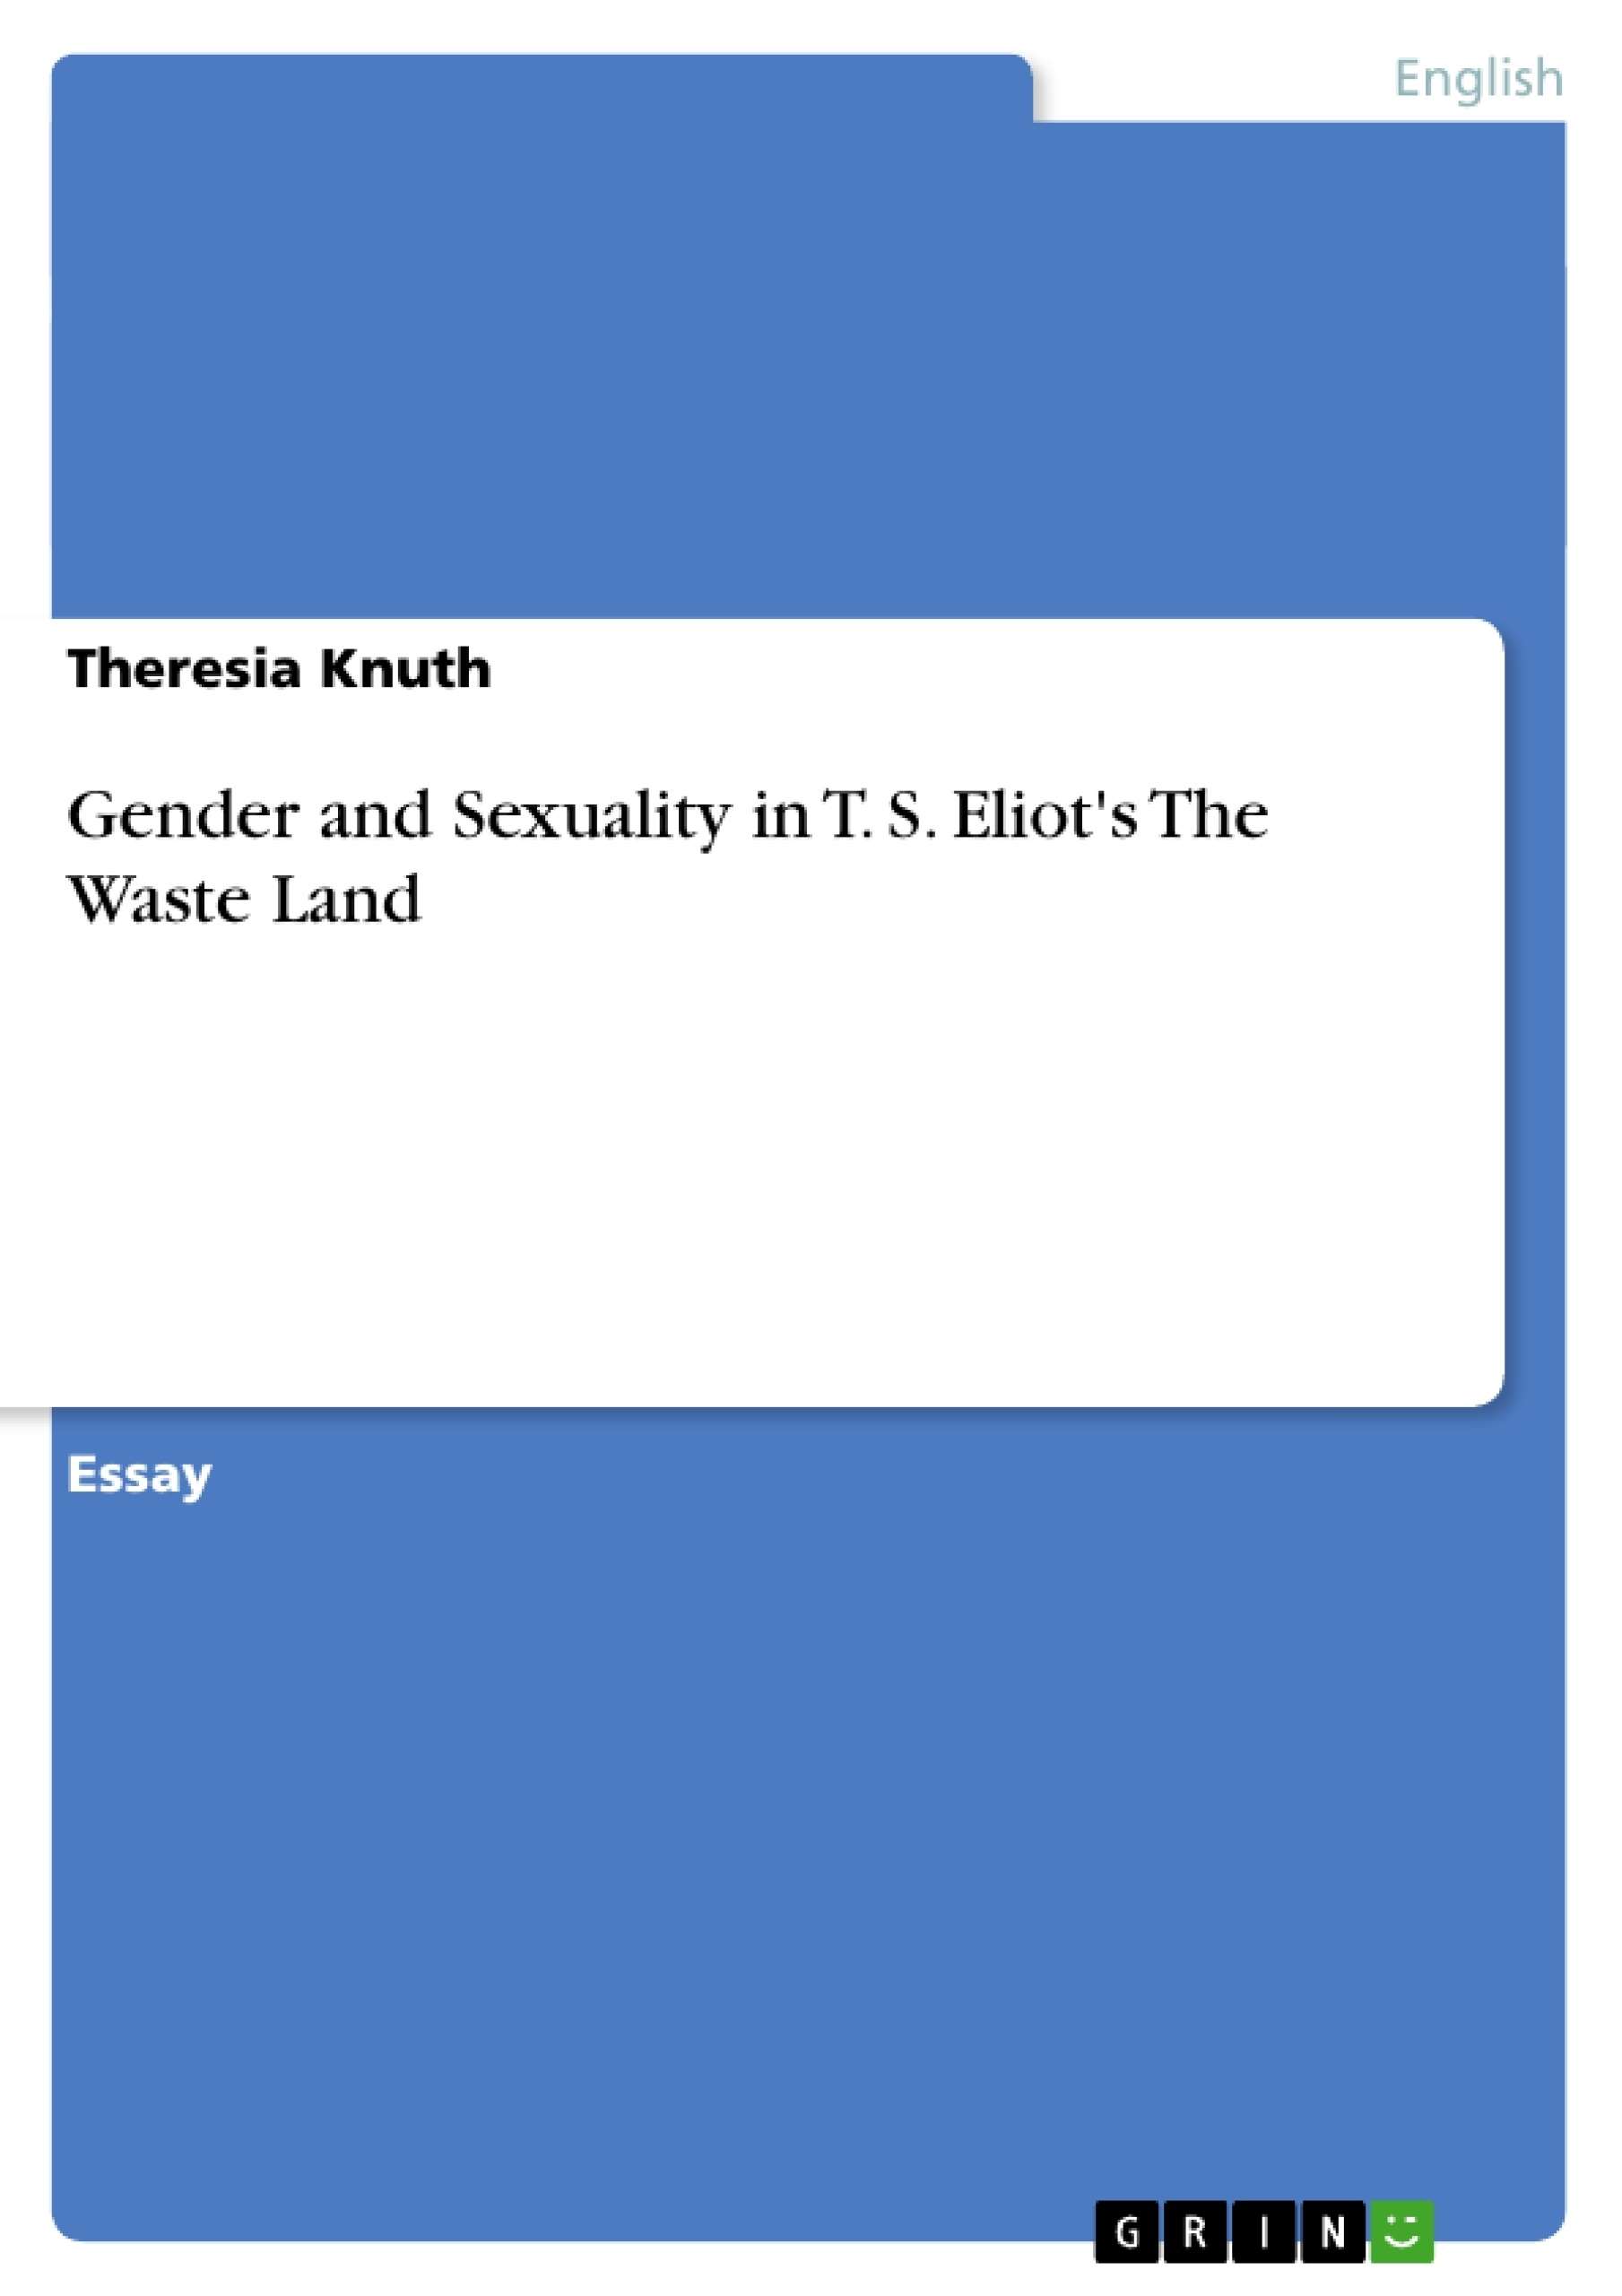 gender and sexuality in t s eliot s the waste land publish upload your own papers earn money and win an iphone 7